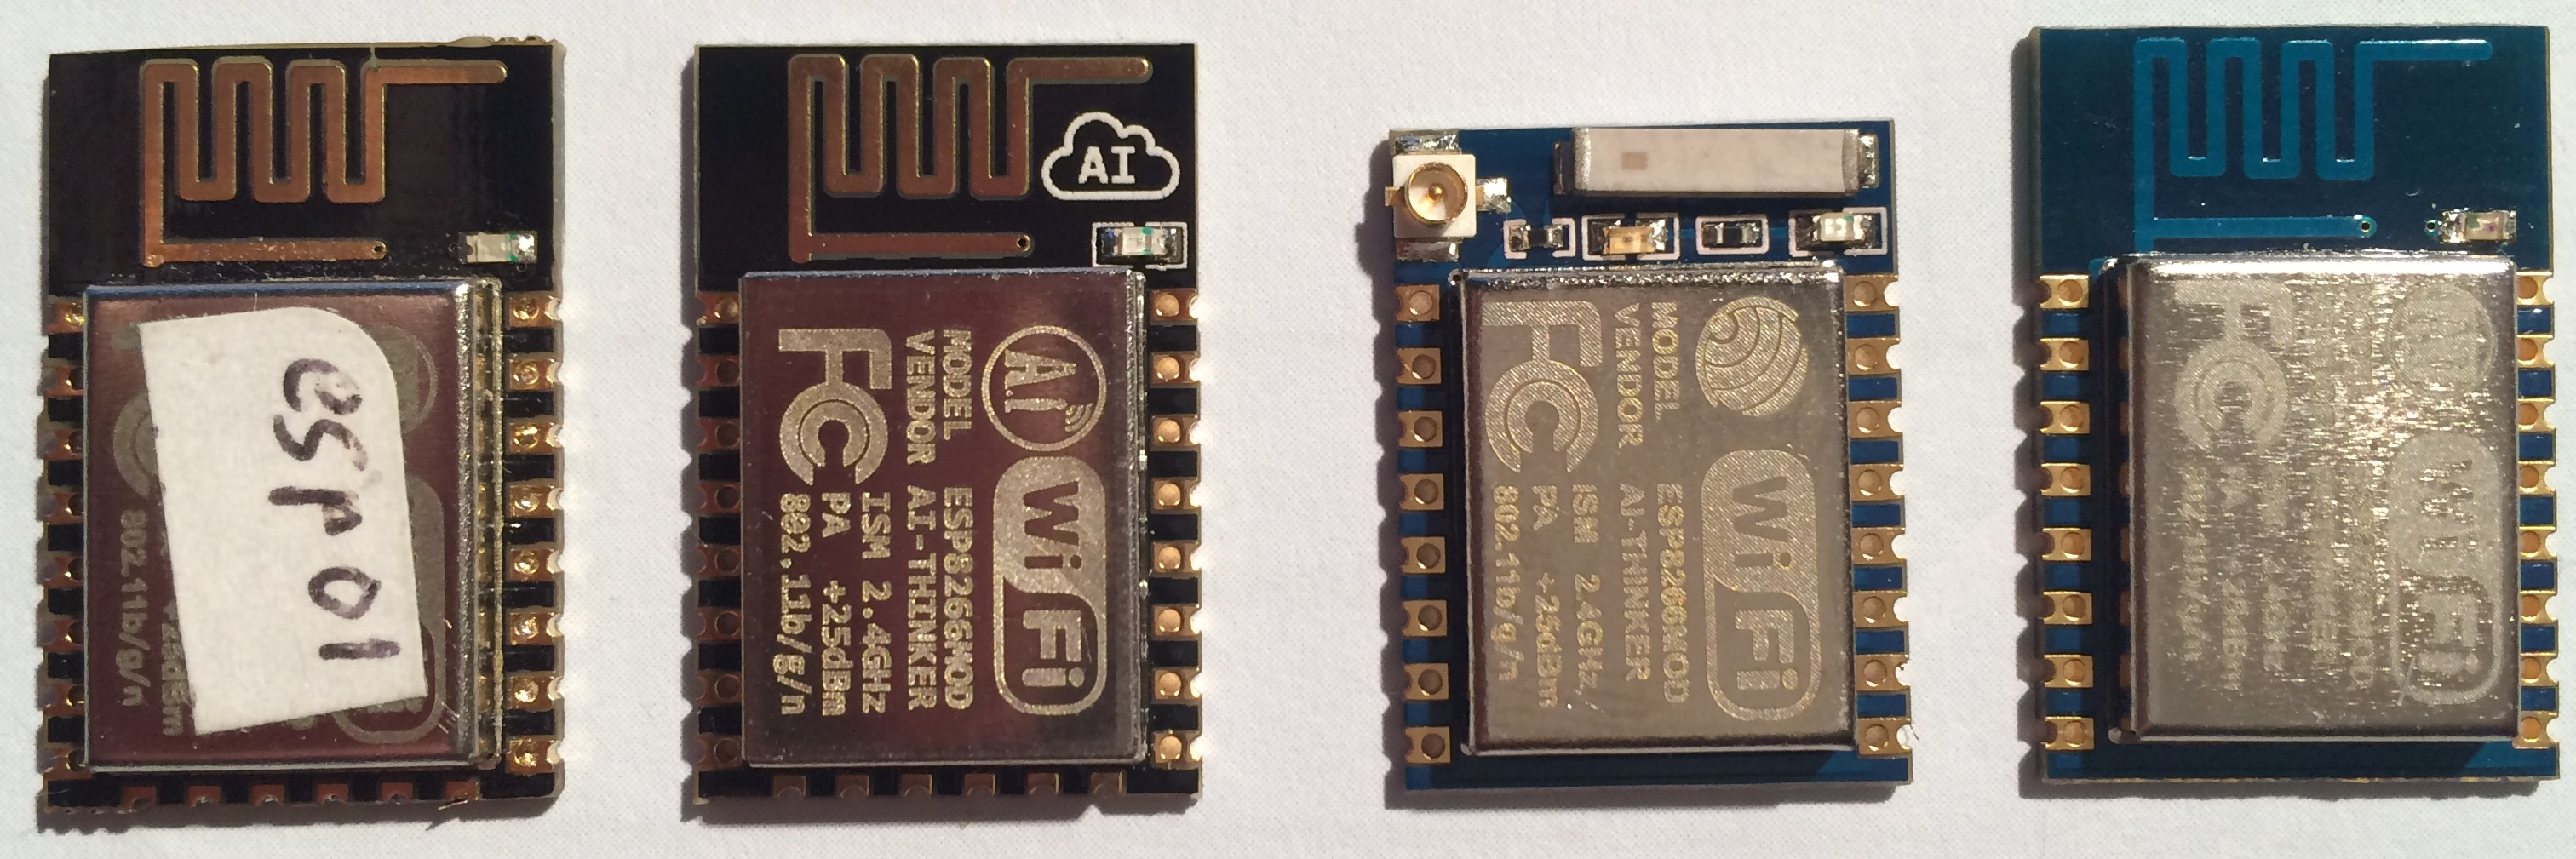 Esp8266 Reset And Ch Pd Pins For Ftdi Auto Charless Blog In Circuit Transistor Tester Schematic Different Wifinfo Modules